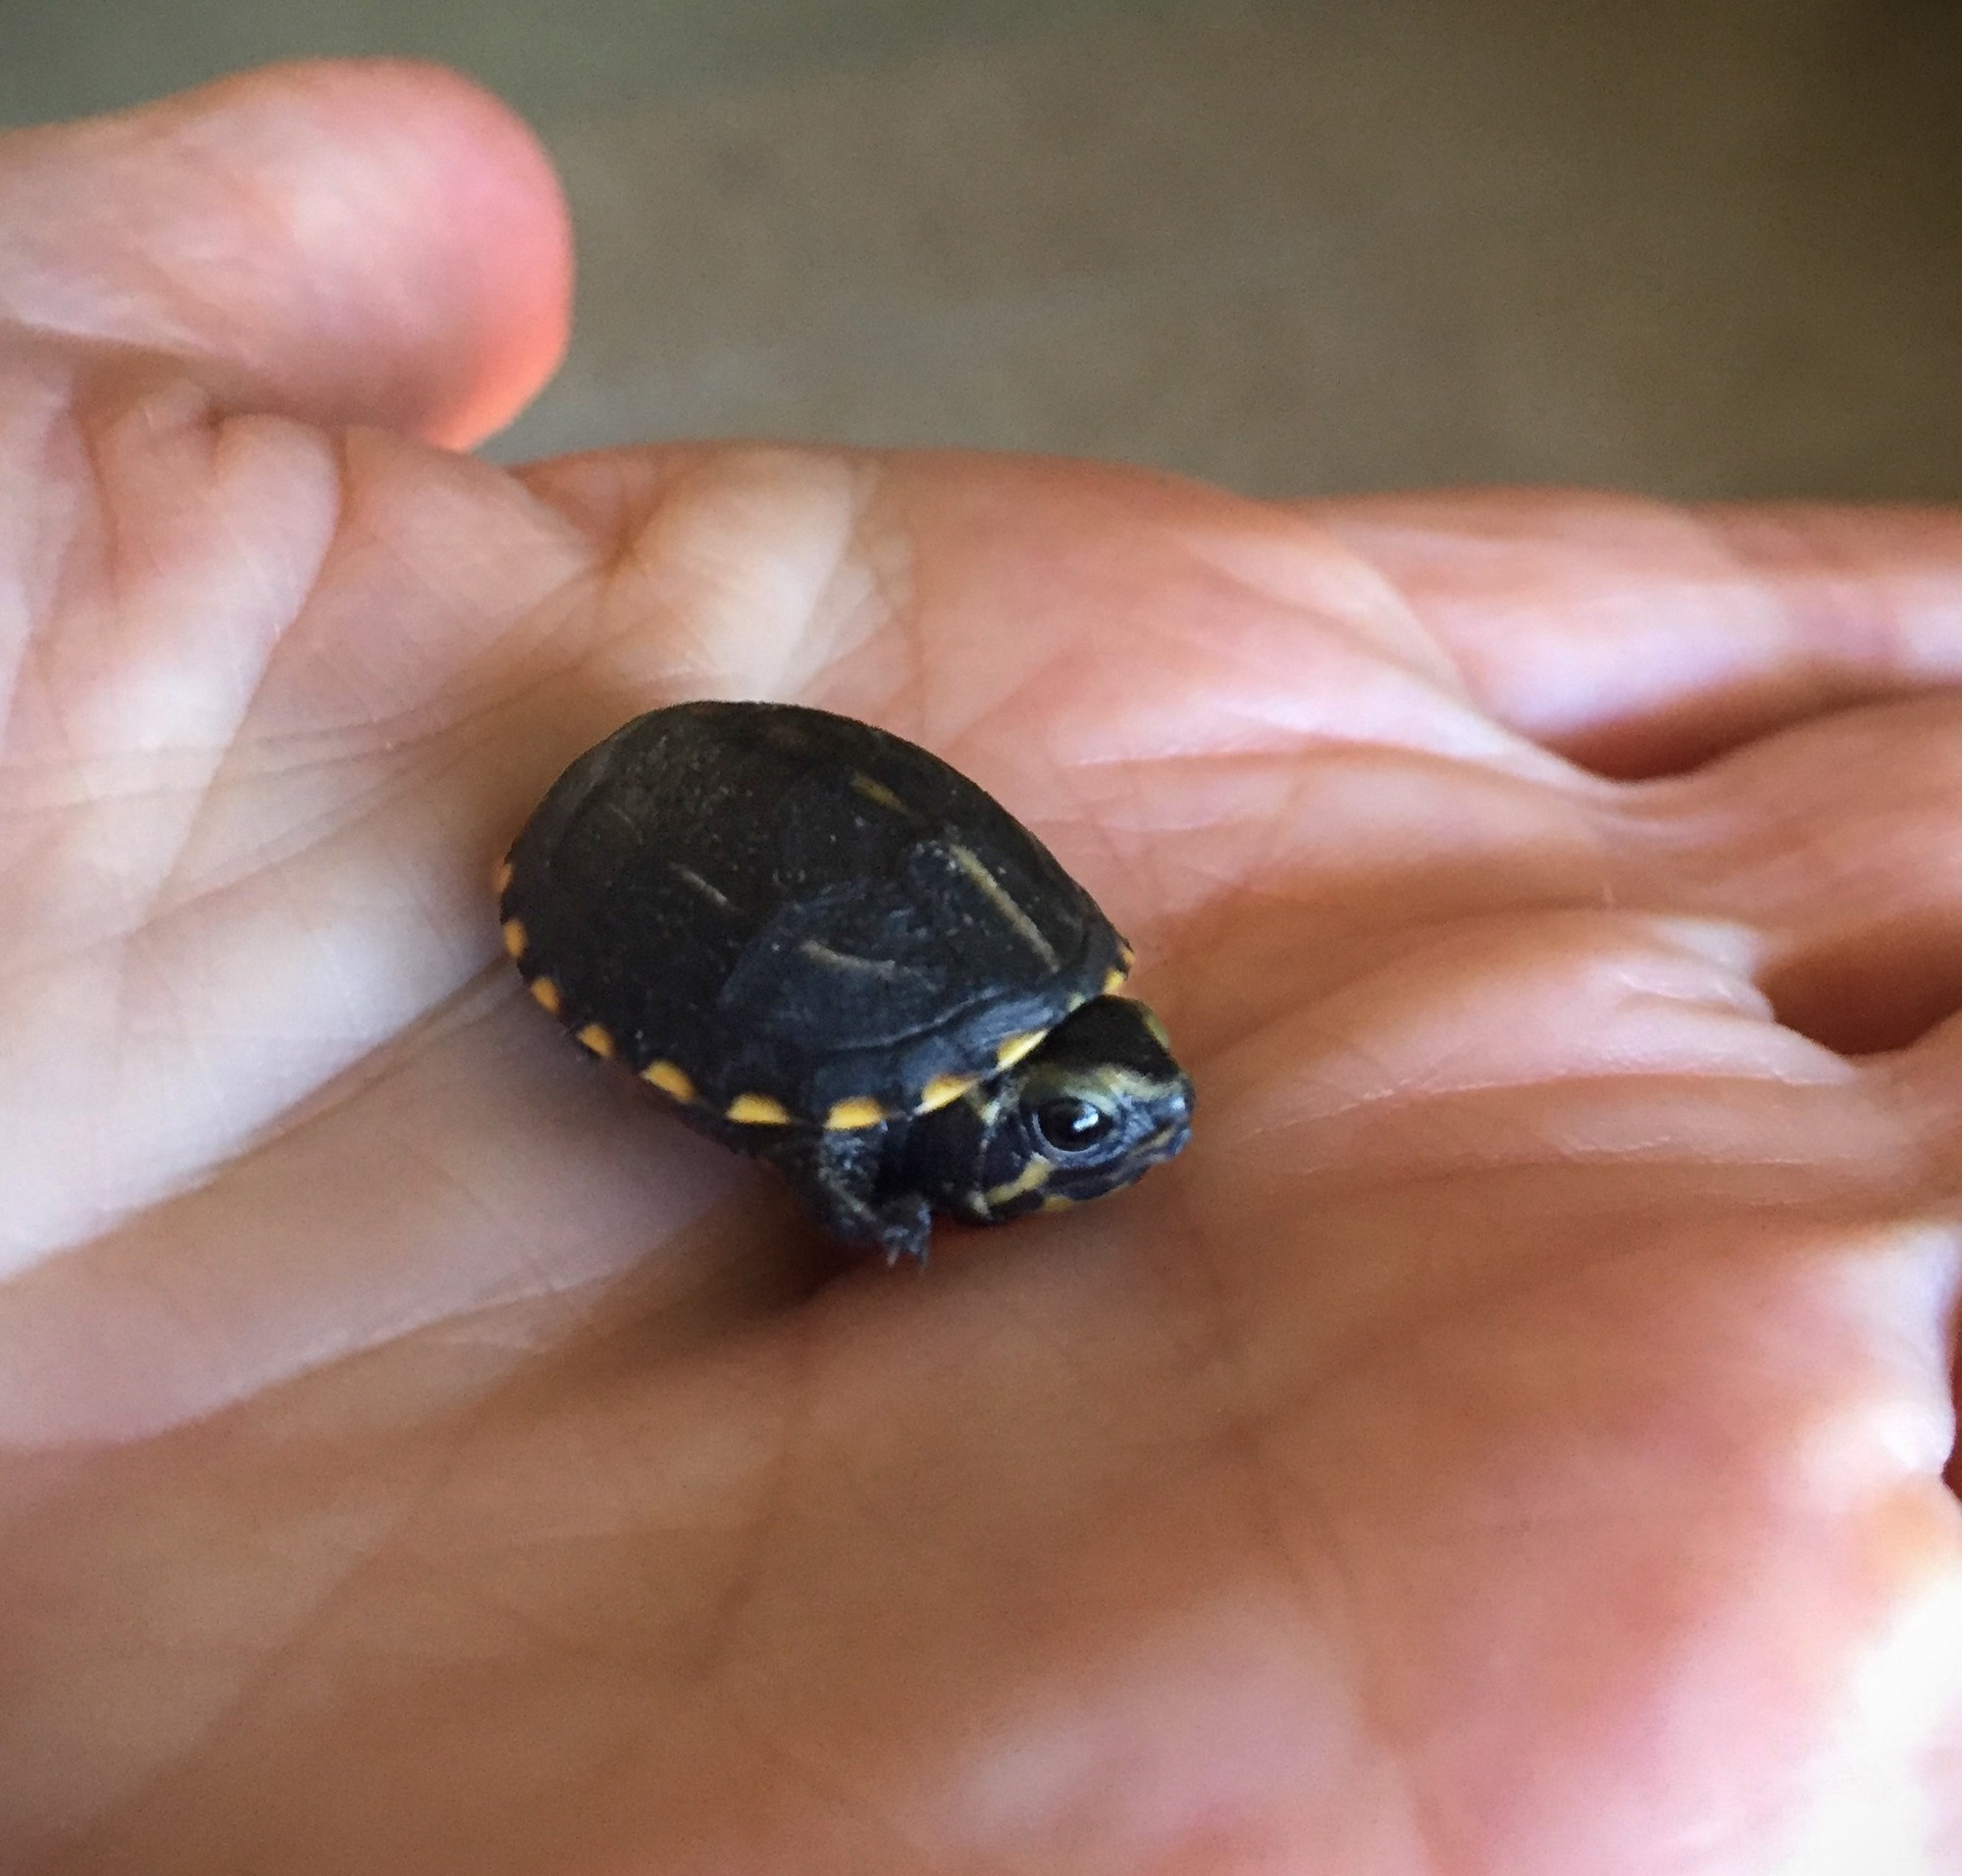 Striped Mud Turtle Hatchling Found In Swimming Pool